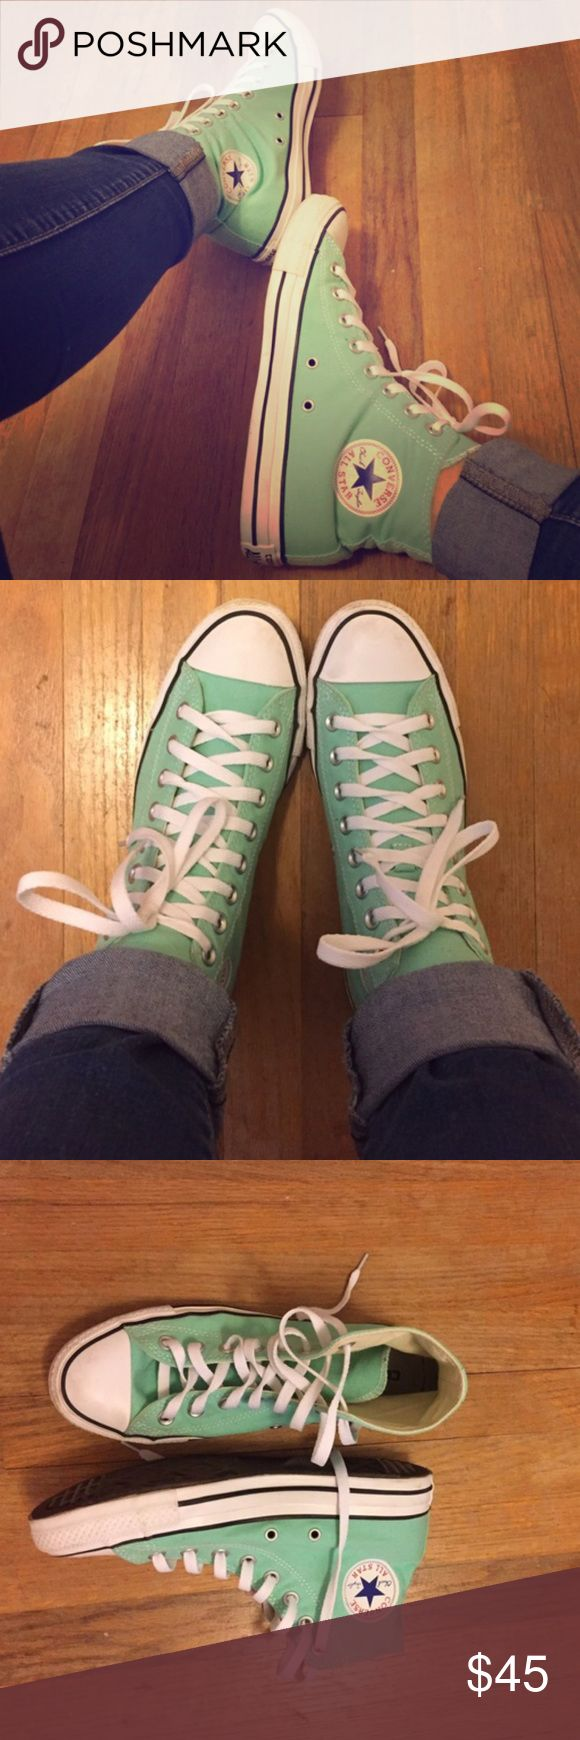 CUTE Like-NEW Mint Green Converse High Tops ❤️ Like NEW Mint Green Converse High Tops, only worn 2x! Perfect for your fall outfit! Size 9 Women's! Converse Shoes Sneakers